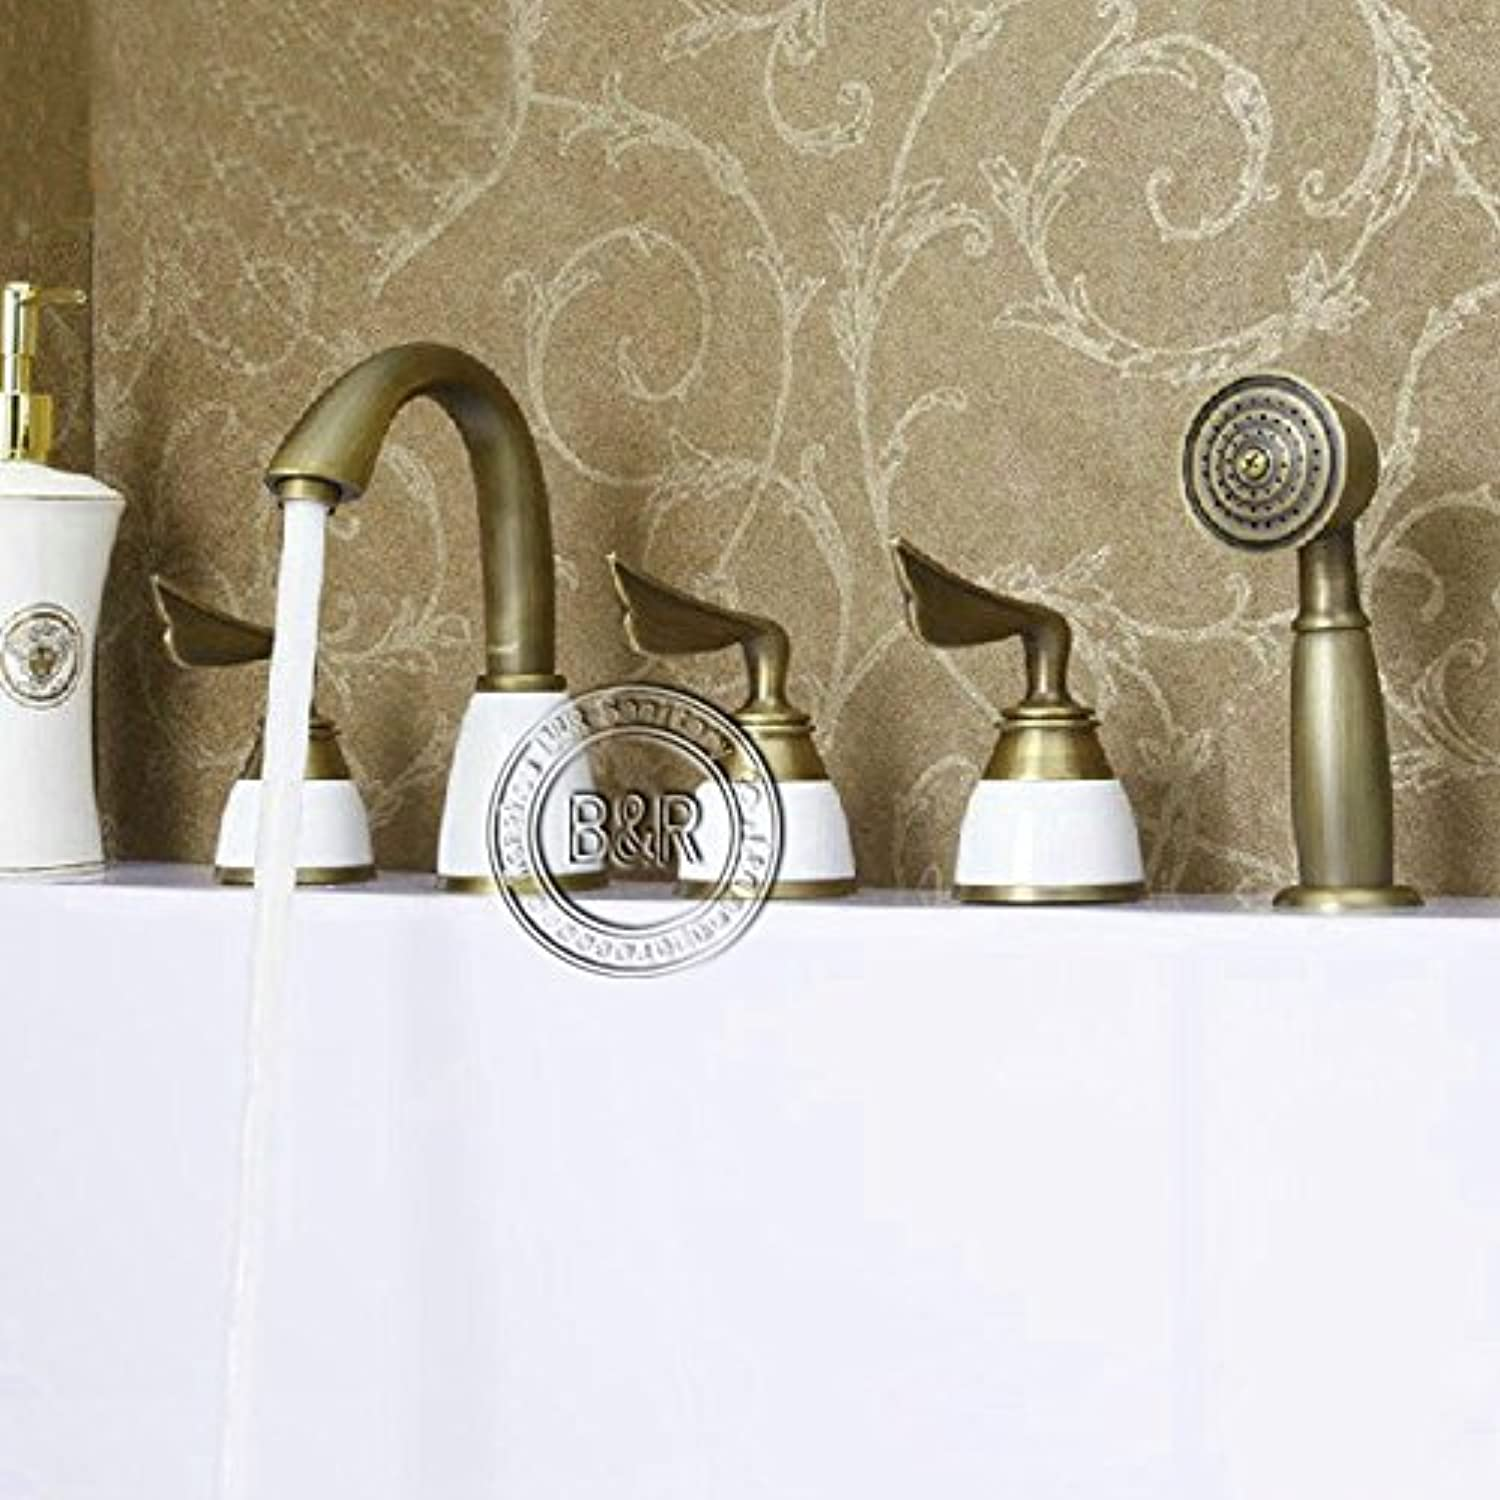 CZOOR Antique Tub Faucet Bathroom Brass Mixer Three Handles Five Holes Surface Mounted Faucet Hy-681